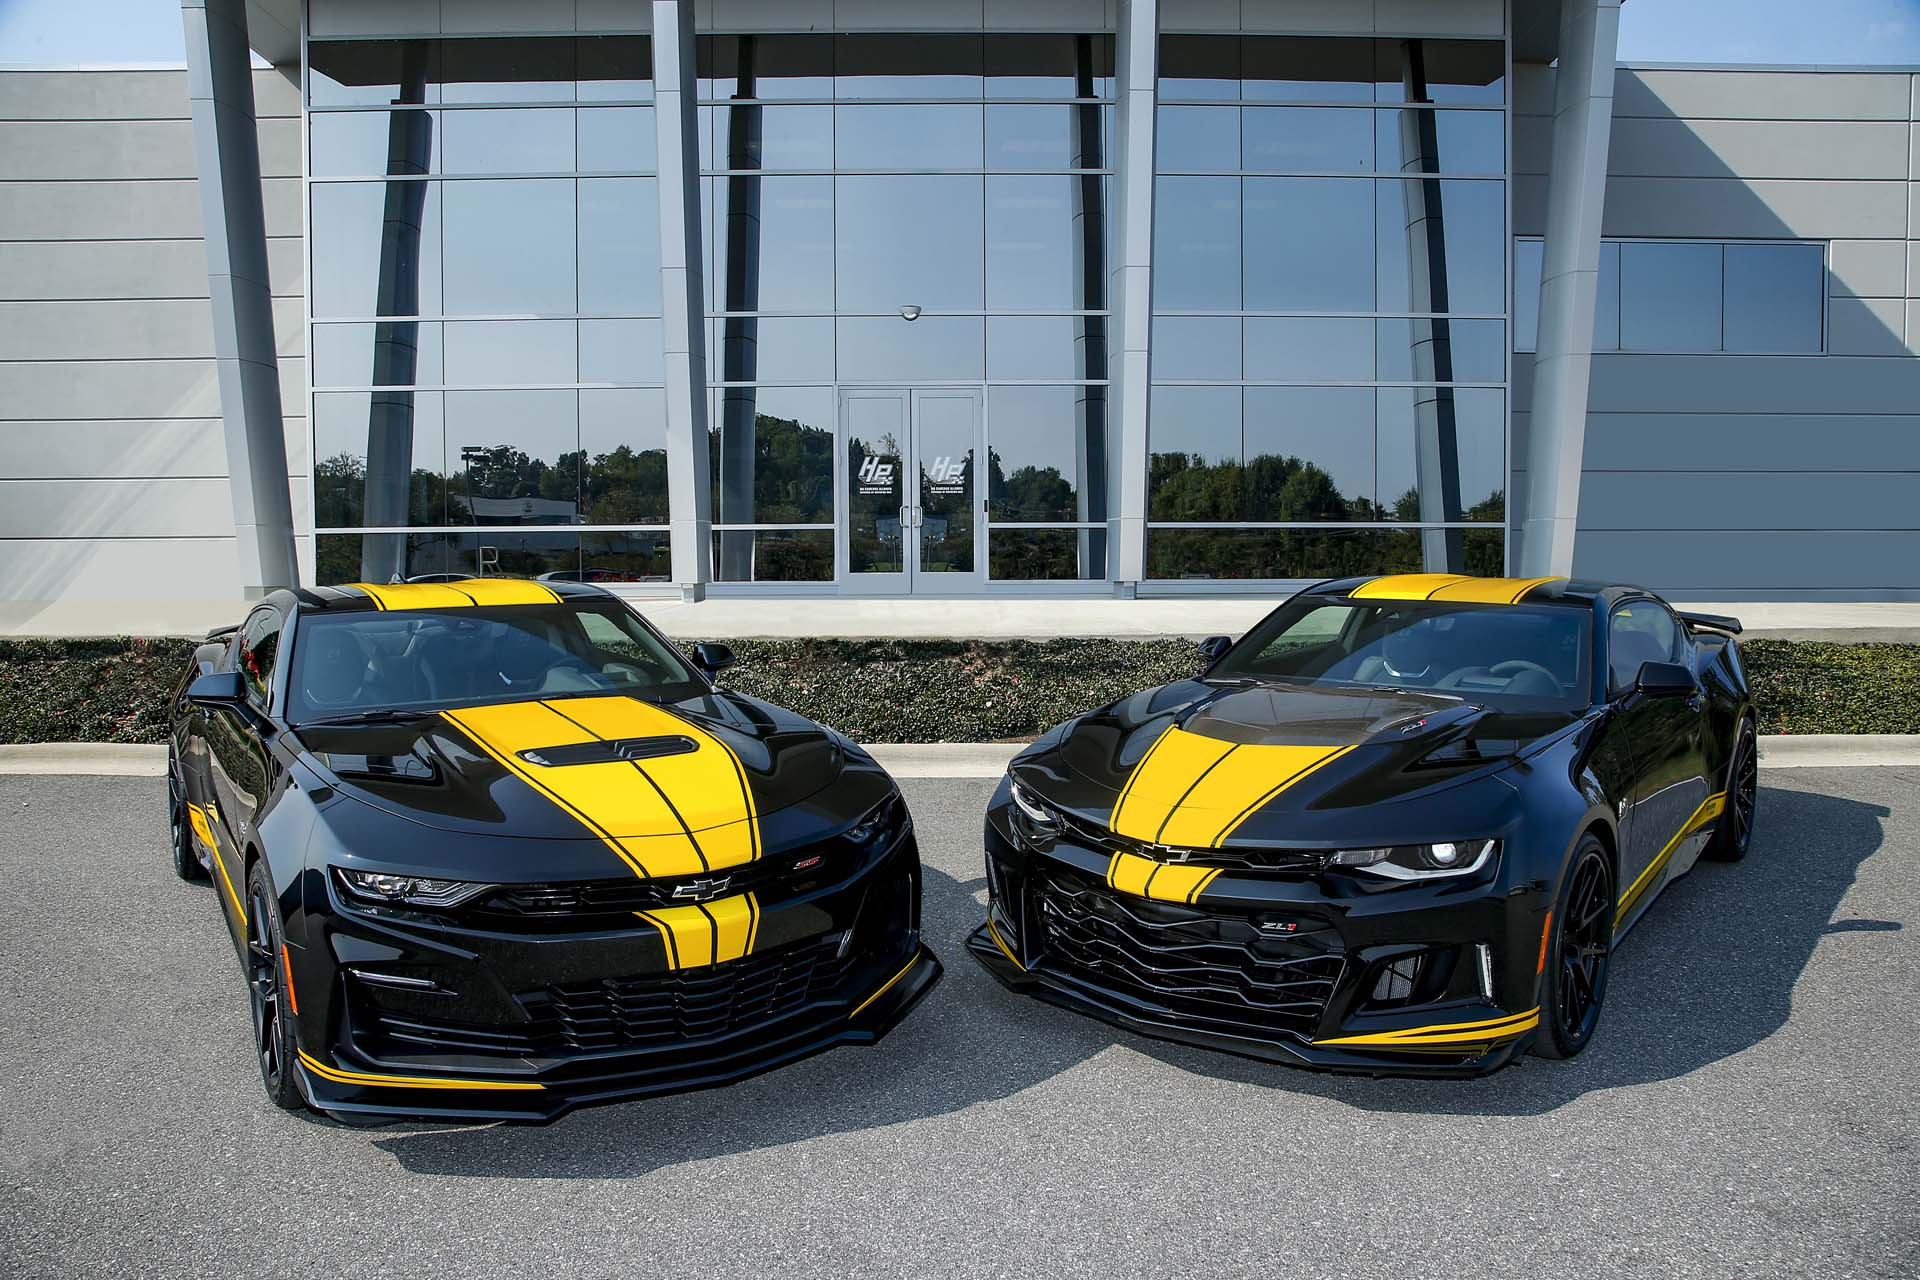 Rent A 750-Horsepower Chevrolet Camaro Zl1 From Hertz 2022 Chevy Camaro Ss Release Date, Exhaust, Features